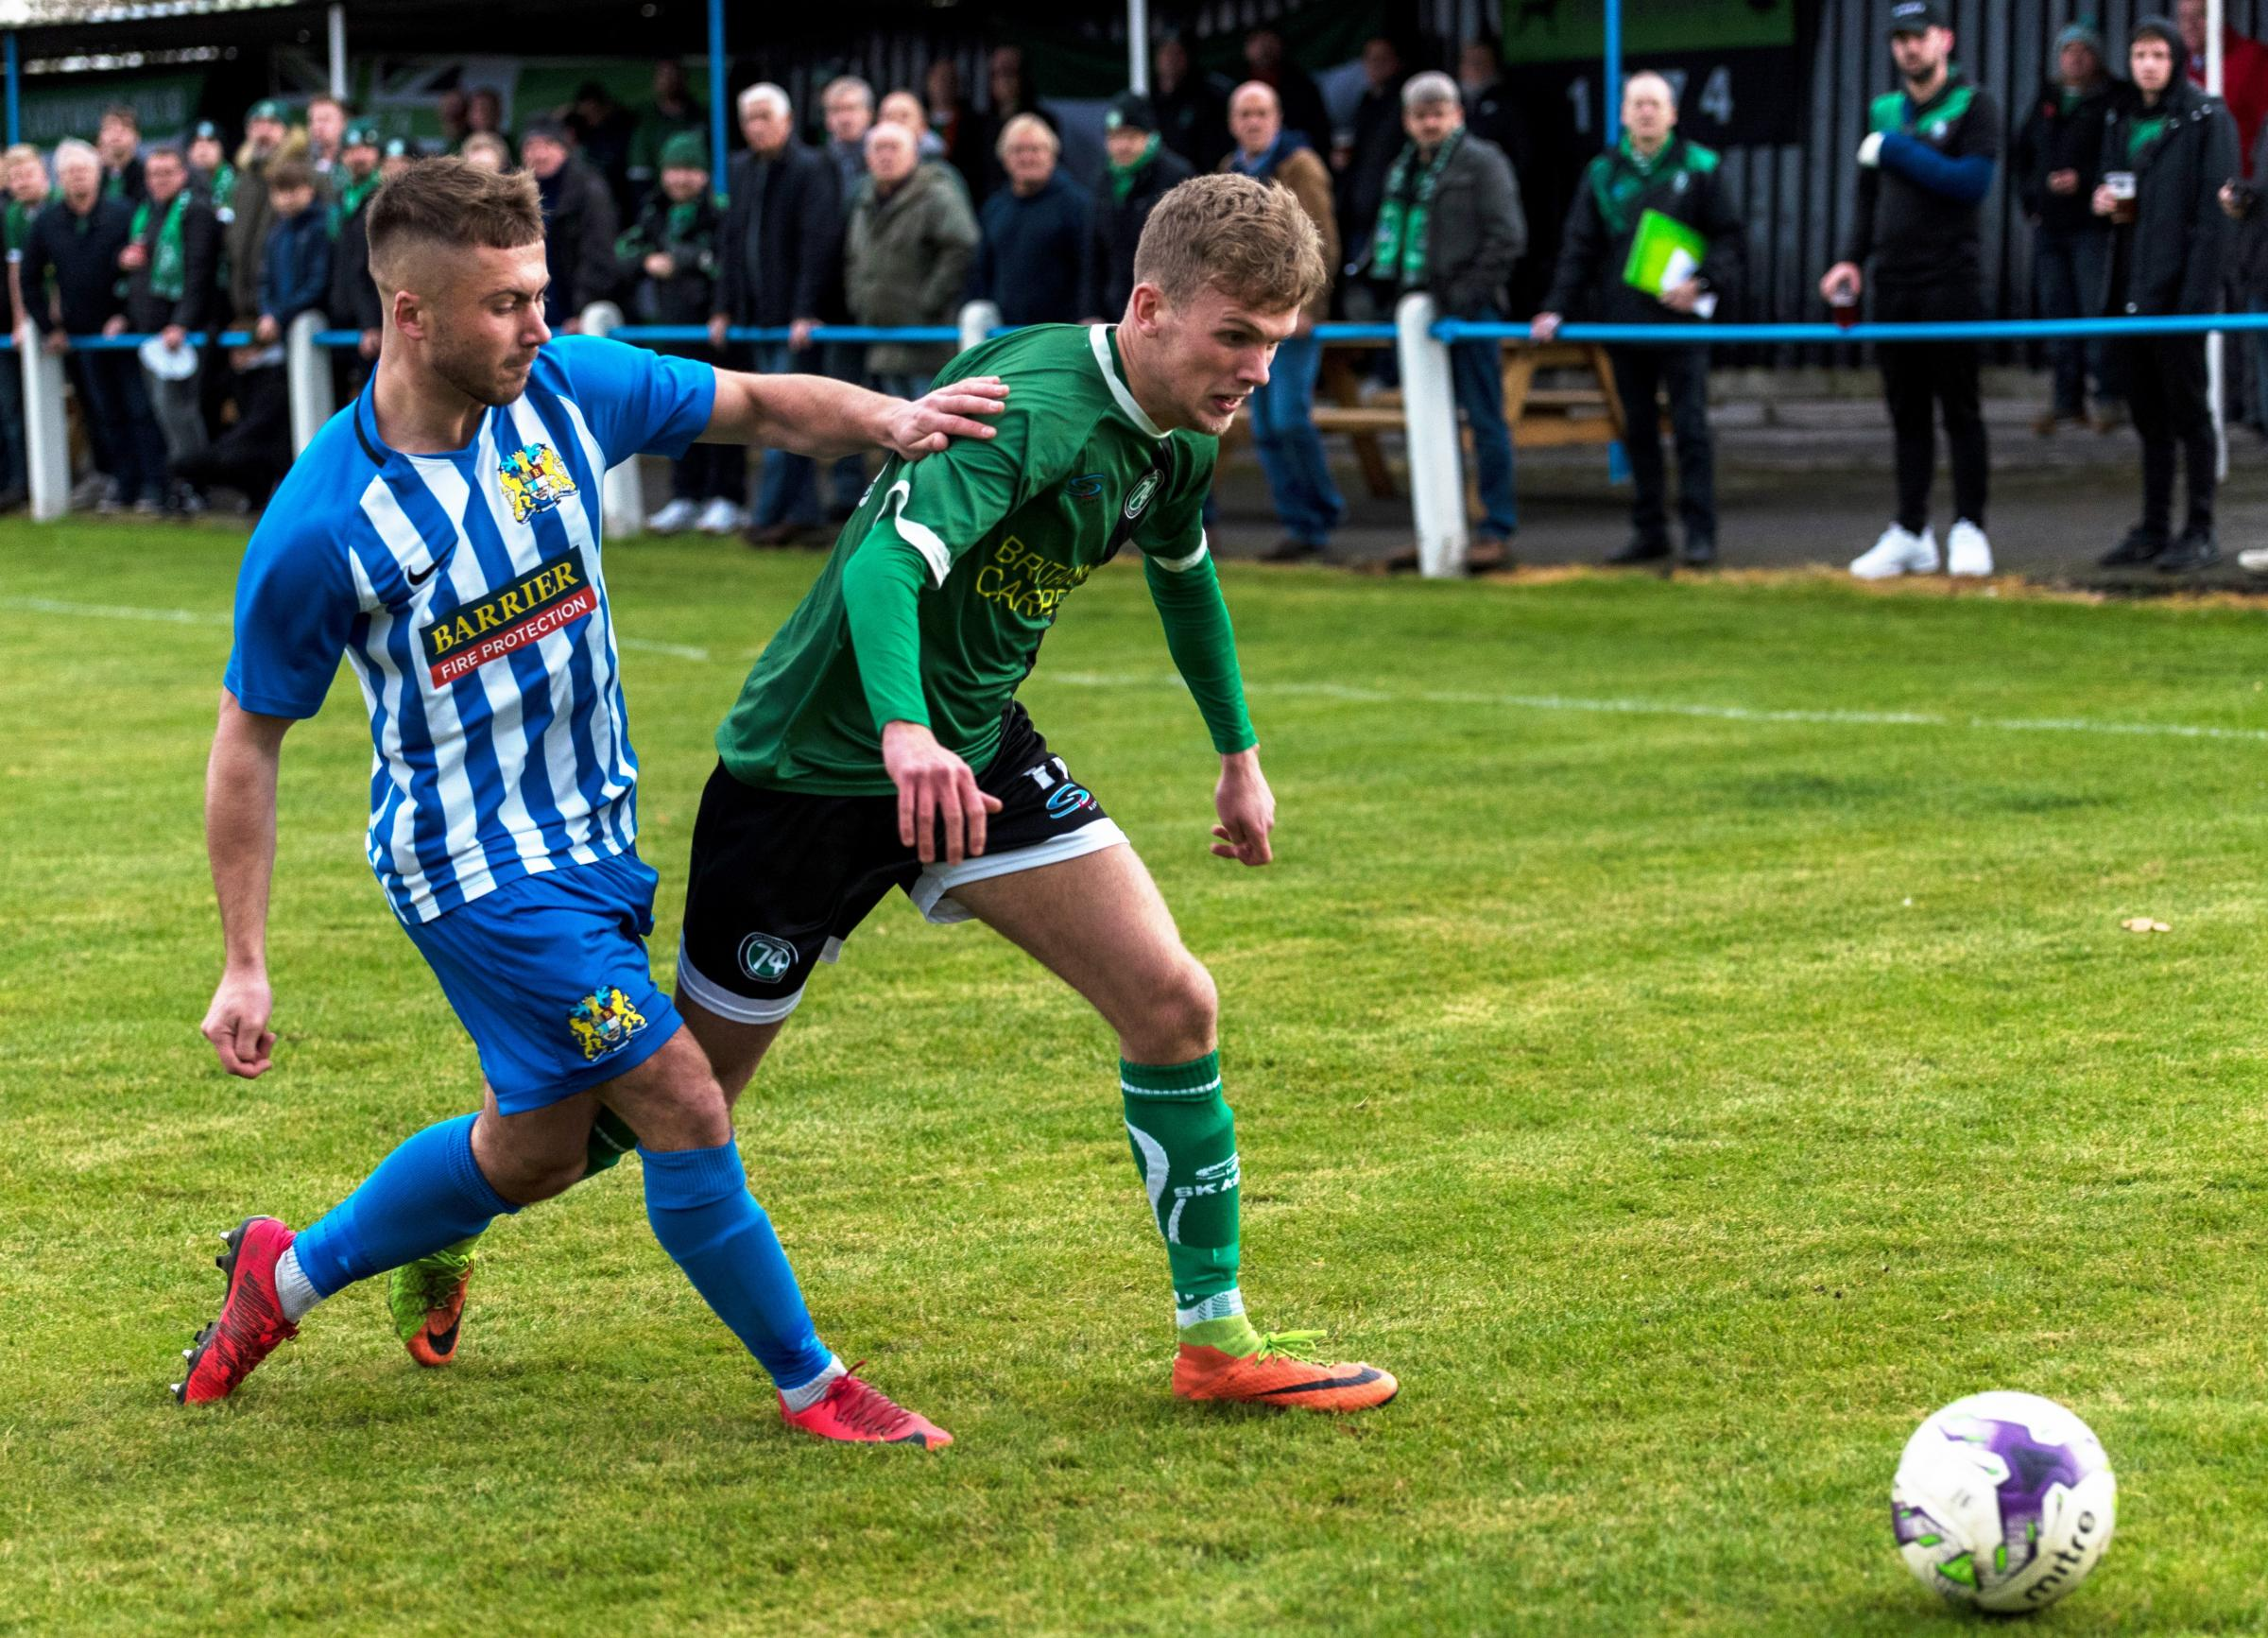 Taylor Kennerley attempts to escape the attention of an opponent during 1874 Northwich's FA Vase clash with Newcastle Benfield. Picture: Ian Dutton